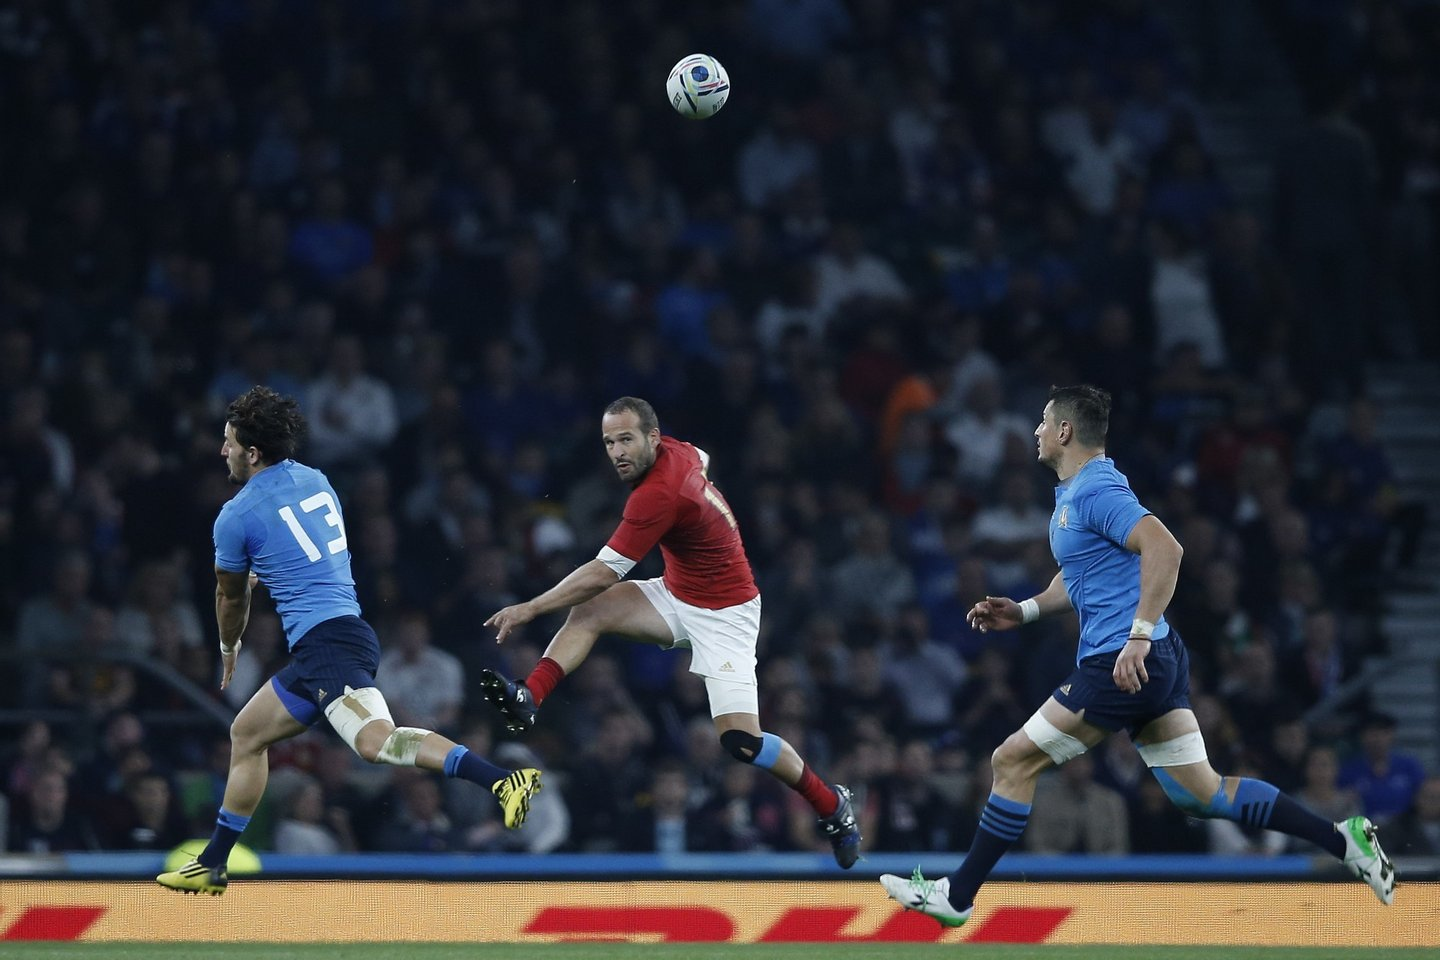 France's fly half Frederic Michalak (C) kicks a clearance during the Pool D match of the 2015 Rugby World Cup between France and Italy at Twickenham stadium, south west London on September 19, 2015. AFP PHOTO / ADRIAN DENNIS RESTRICTED TO EDITORIAL USE, NO USE IN LIVE MATCH TRACKING SERVICES, TO BE USED AS NON-SEQUENTIAL STILLS (Photo credit should read ADRIAN DENNIS/AFP/Getty Images)